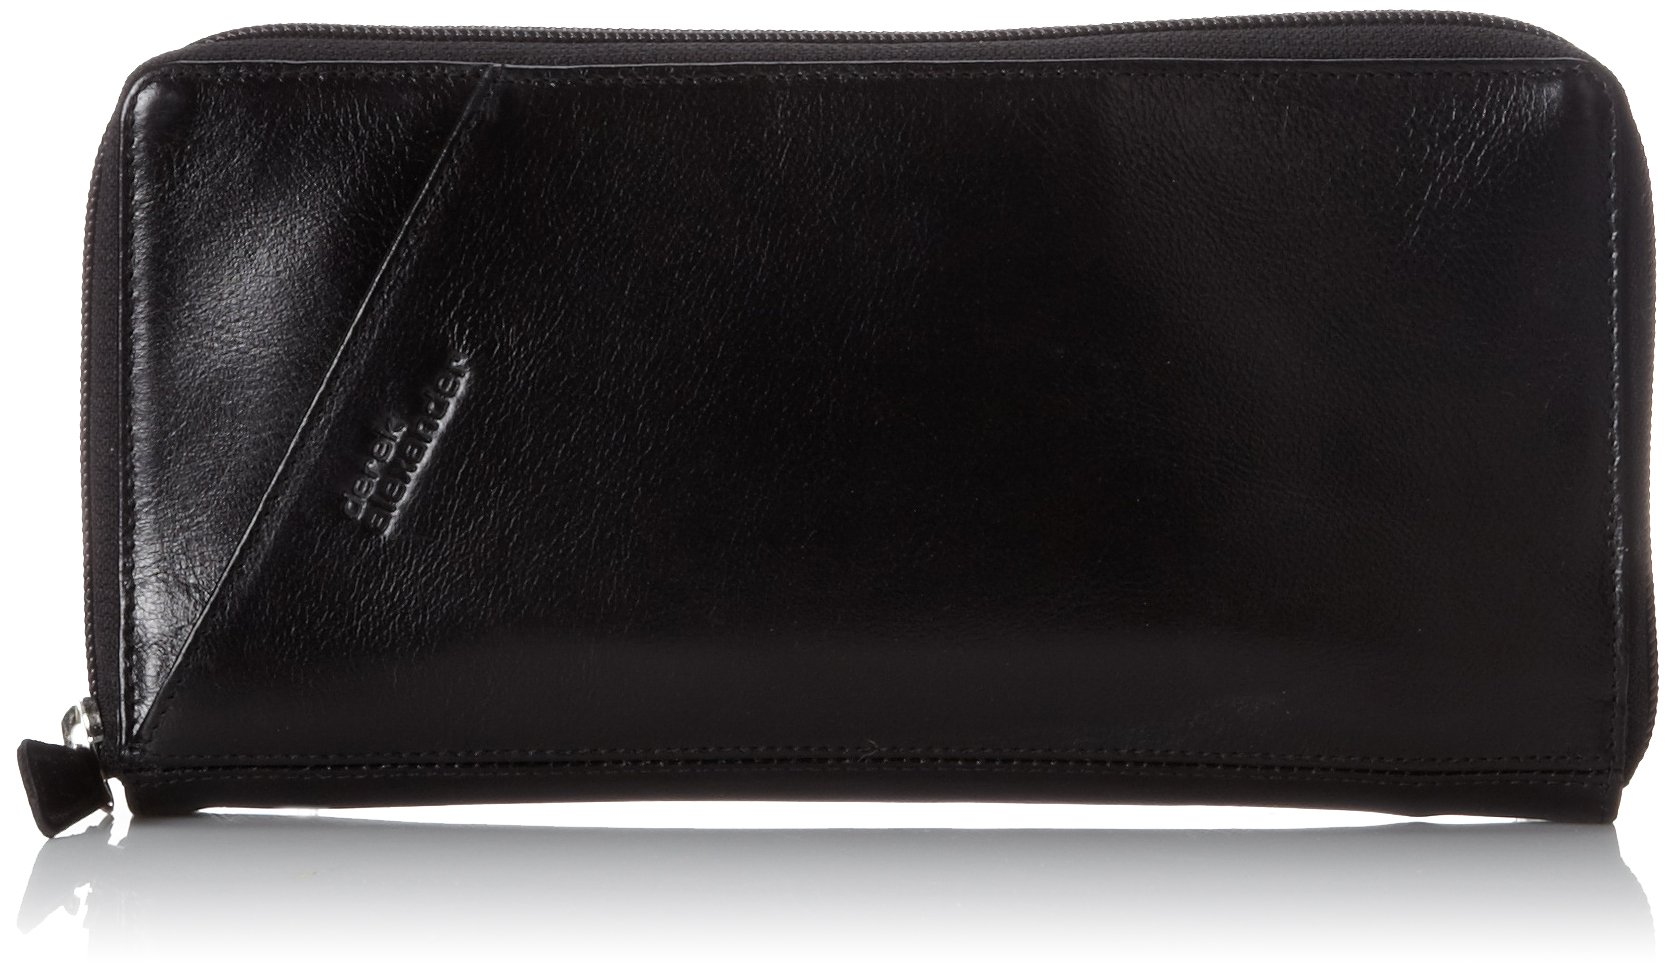 Derek Alexander Passport Travel Wallet, Black, One Size